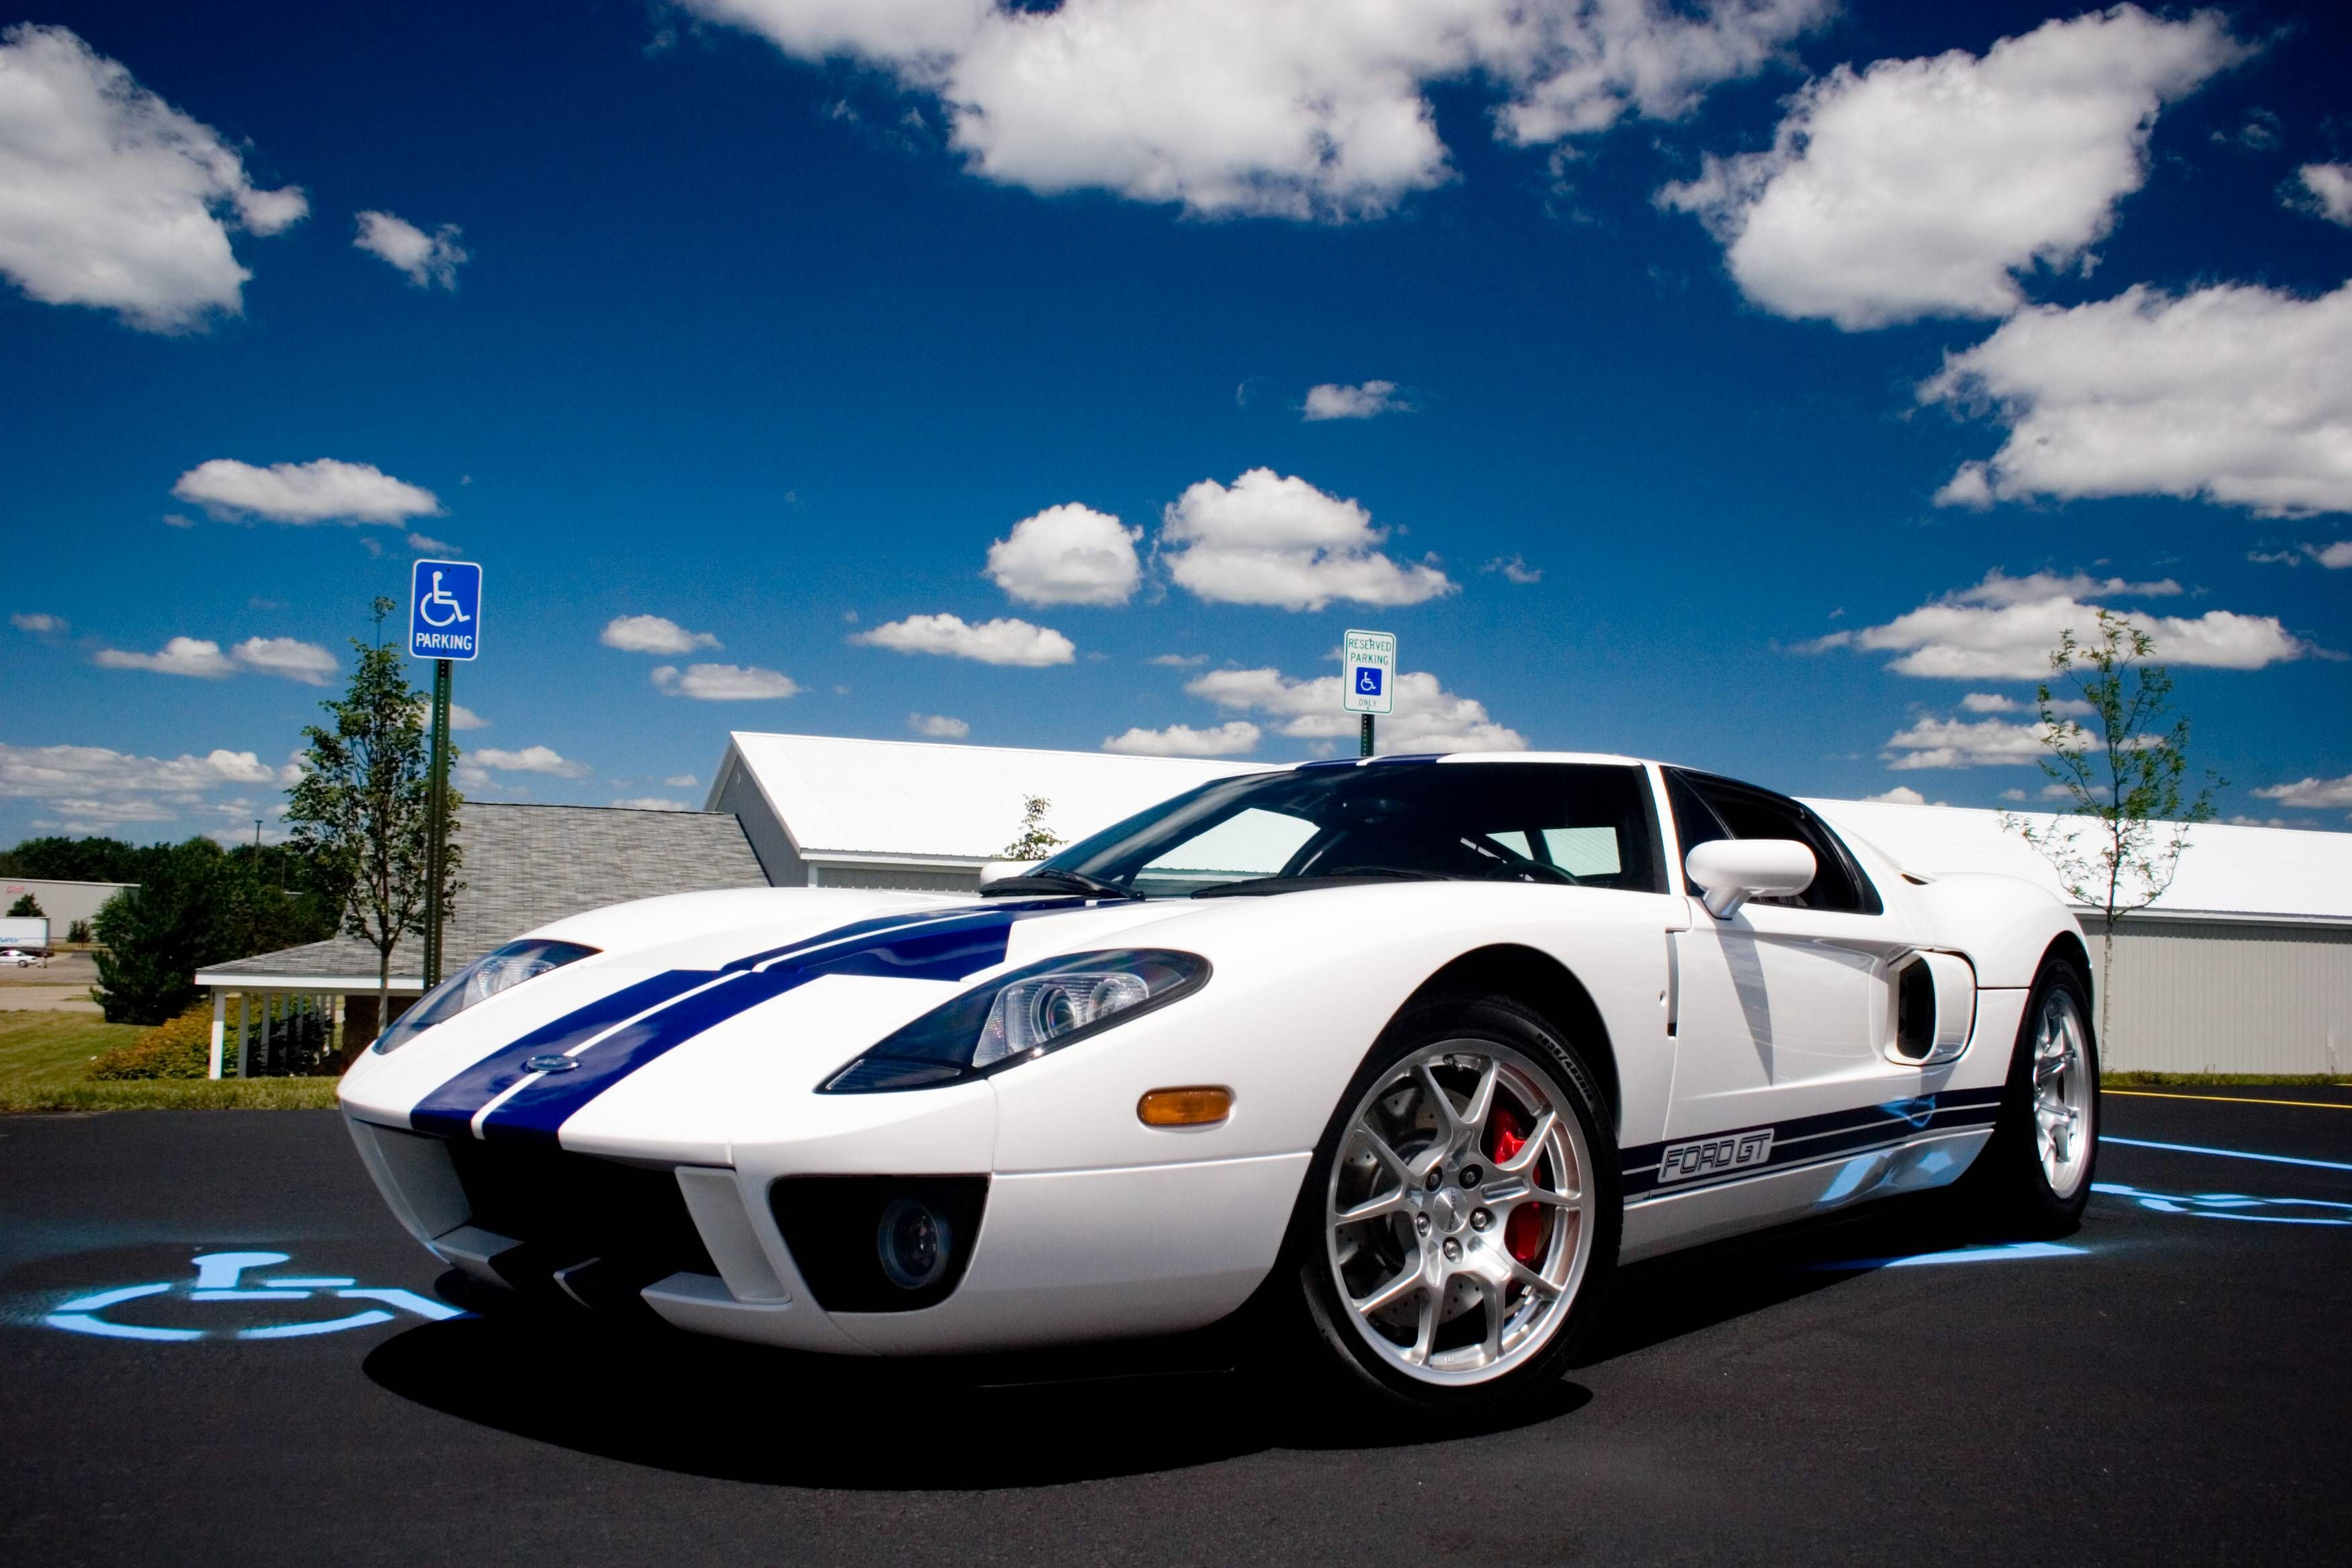 Ford GT White 2014 Wallpaper Walls 1870 Wallpaper